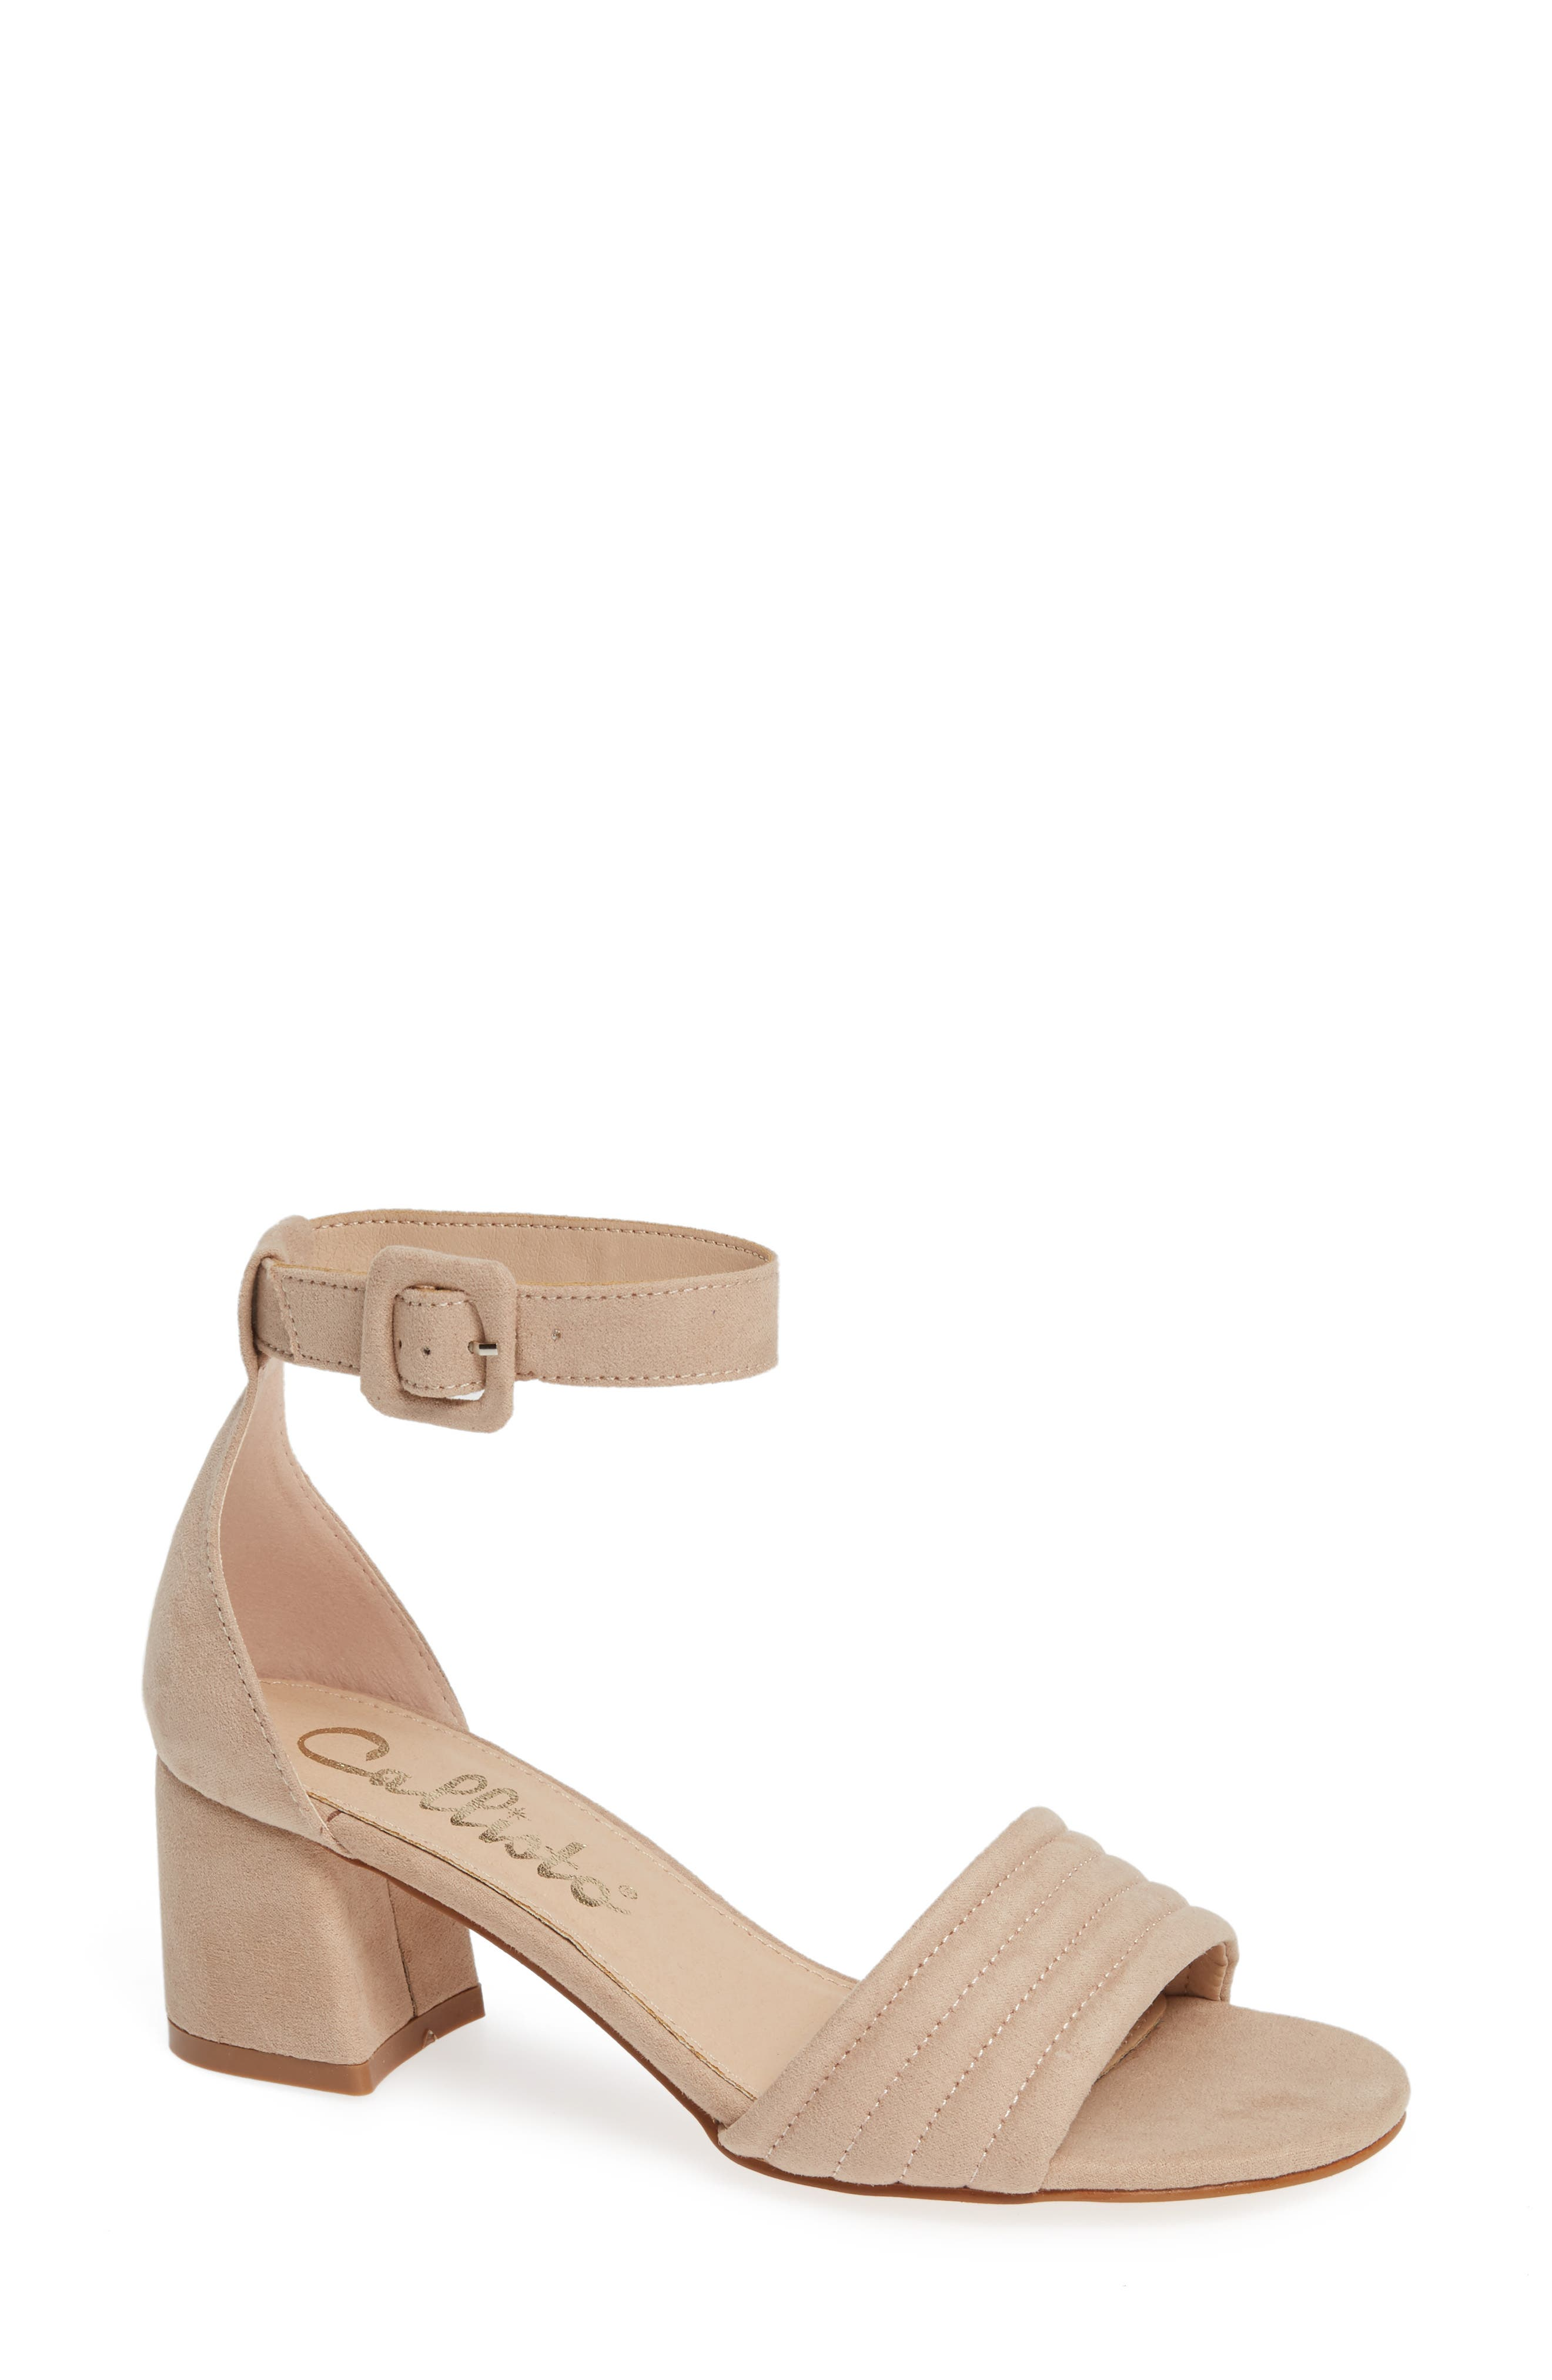 CALLISTO, Puffye Ankle Strap Sandal, Main thumbnail 1, color, BLUSH SUEDE SYNTHETIC